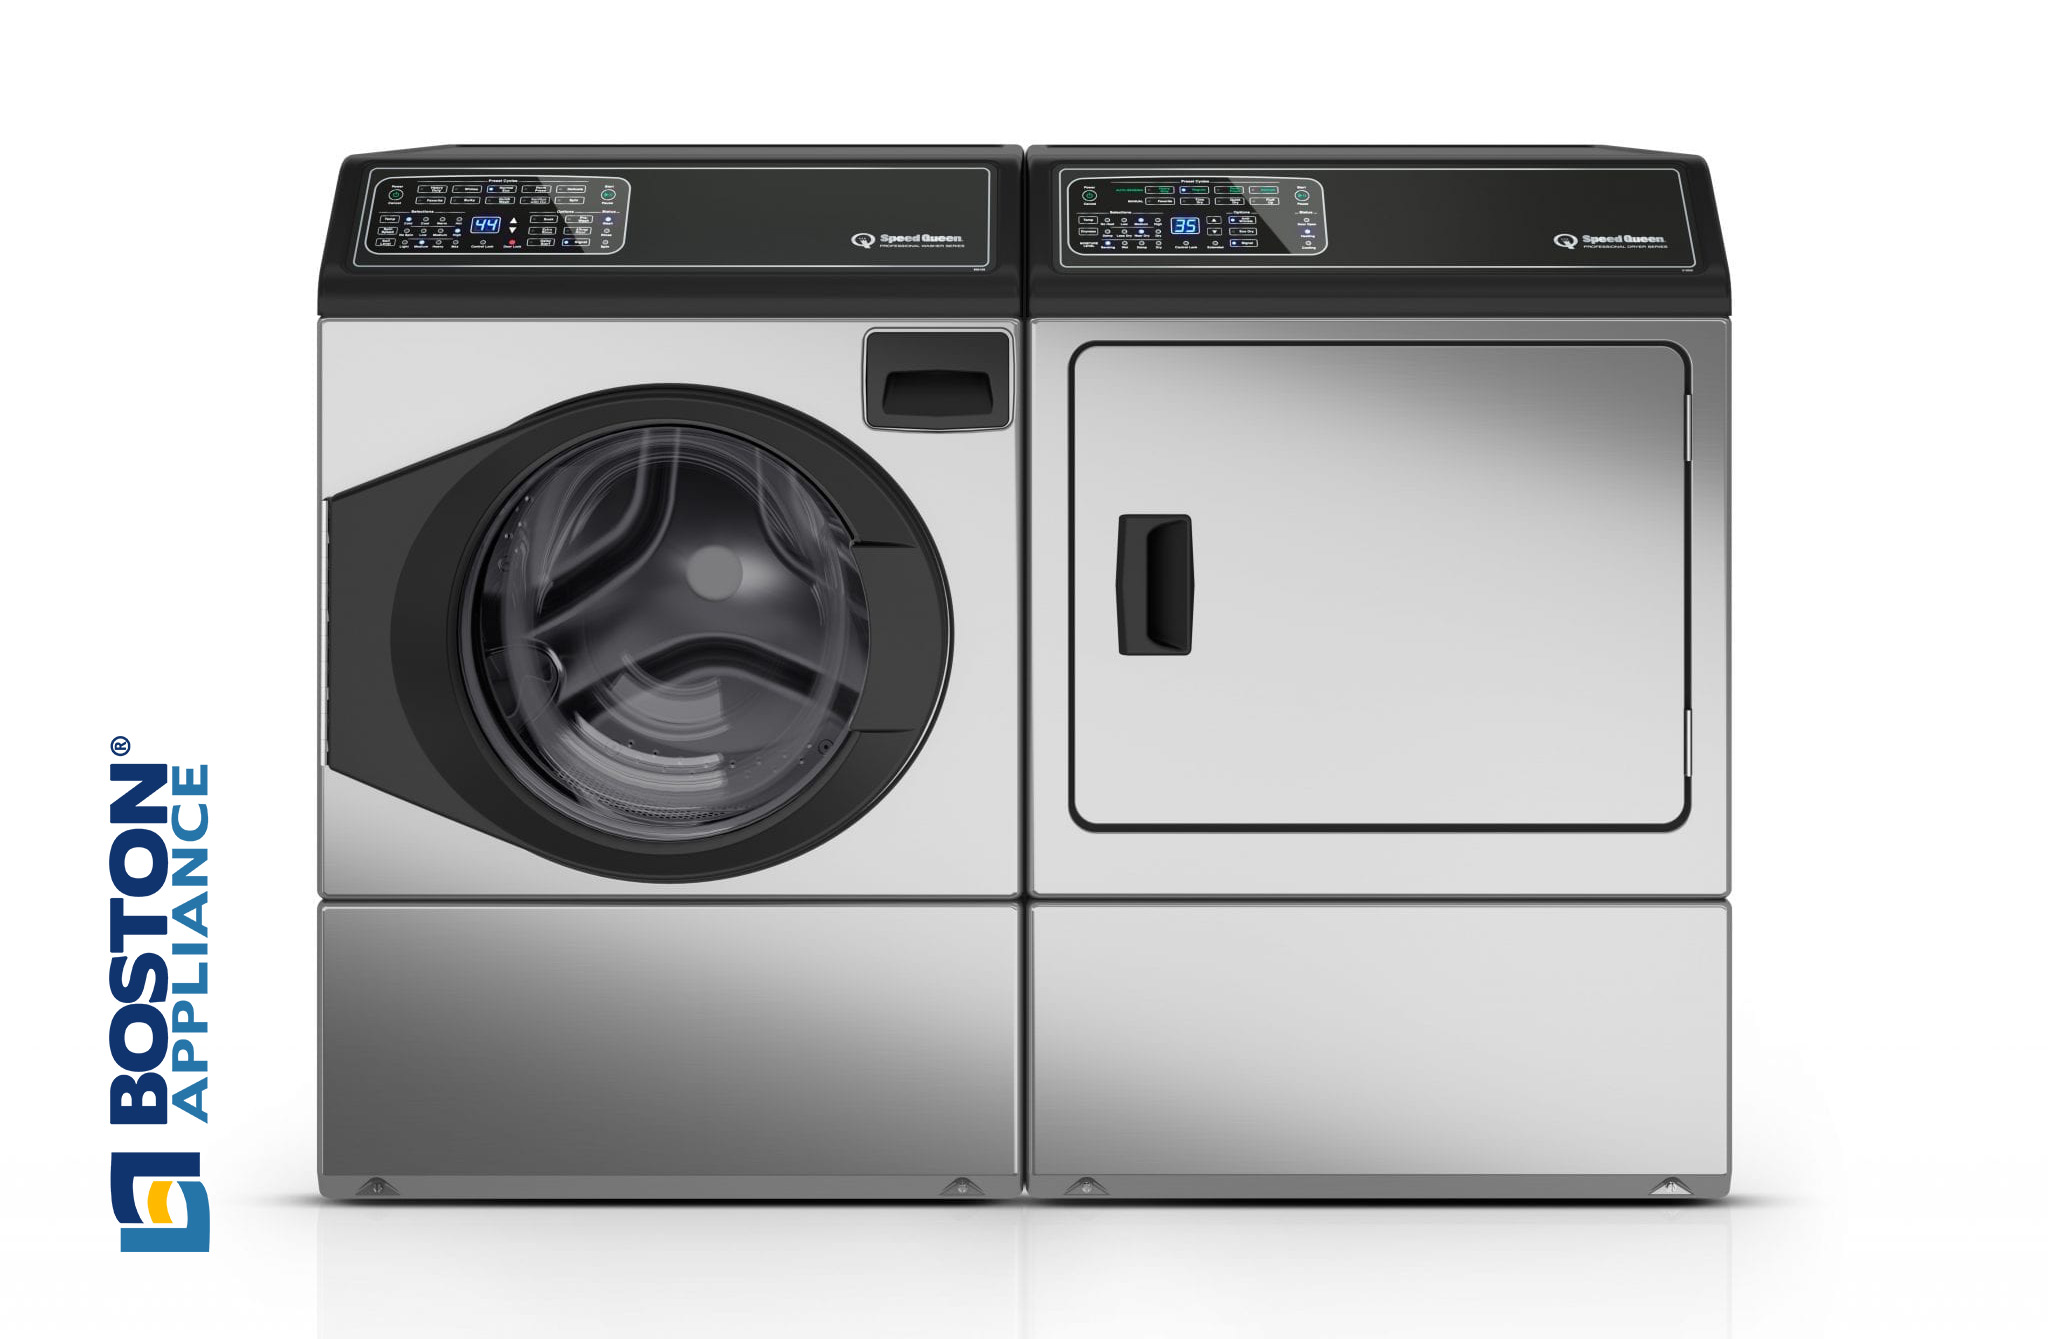 Washer and Dryer Sets from Speed Queen